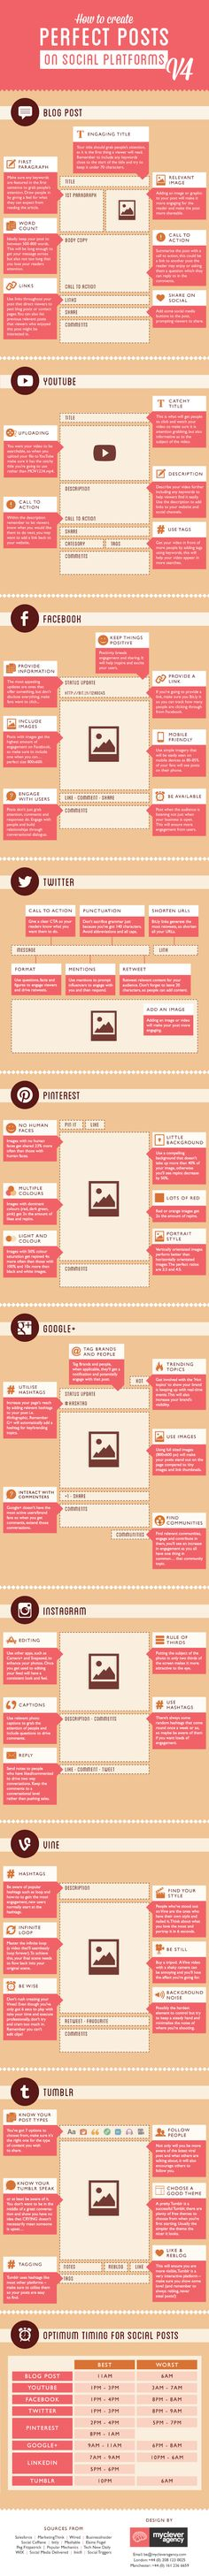 How to create perfect posts on social platforms ? Source : Frenchweb, mycleveragency